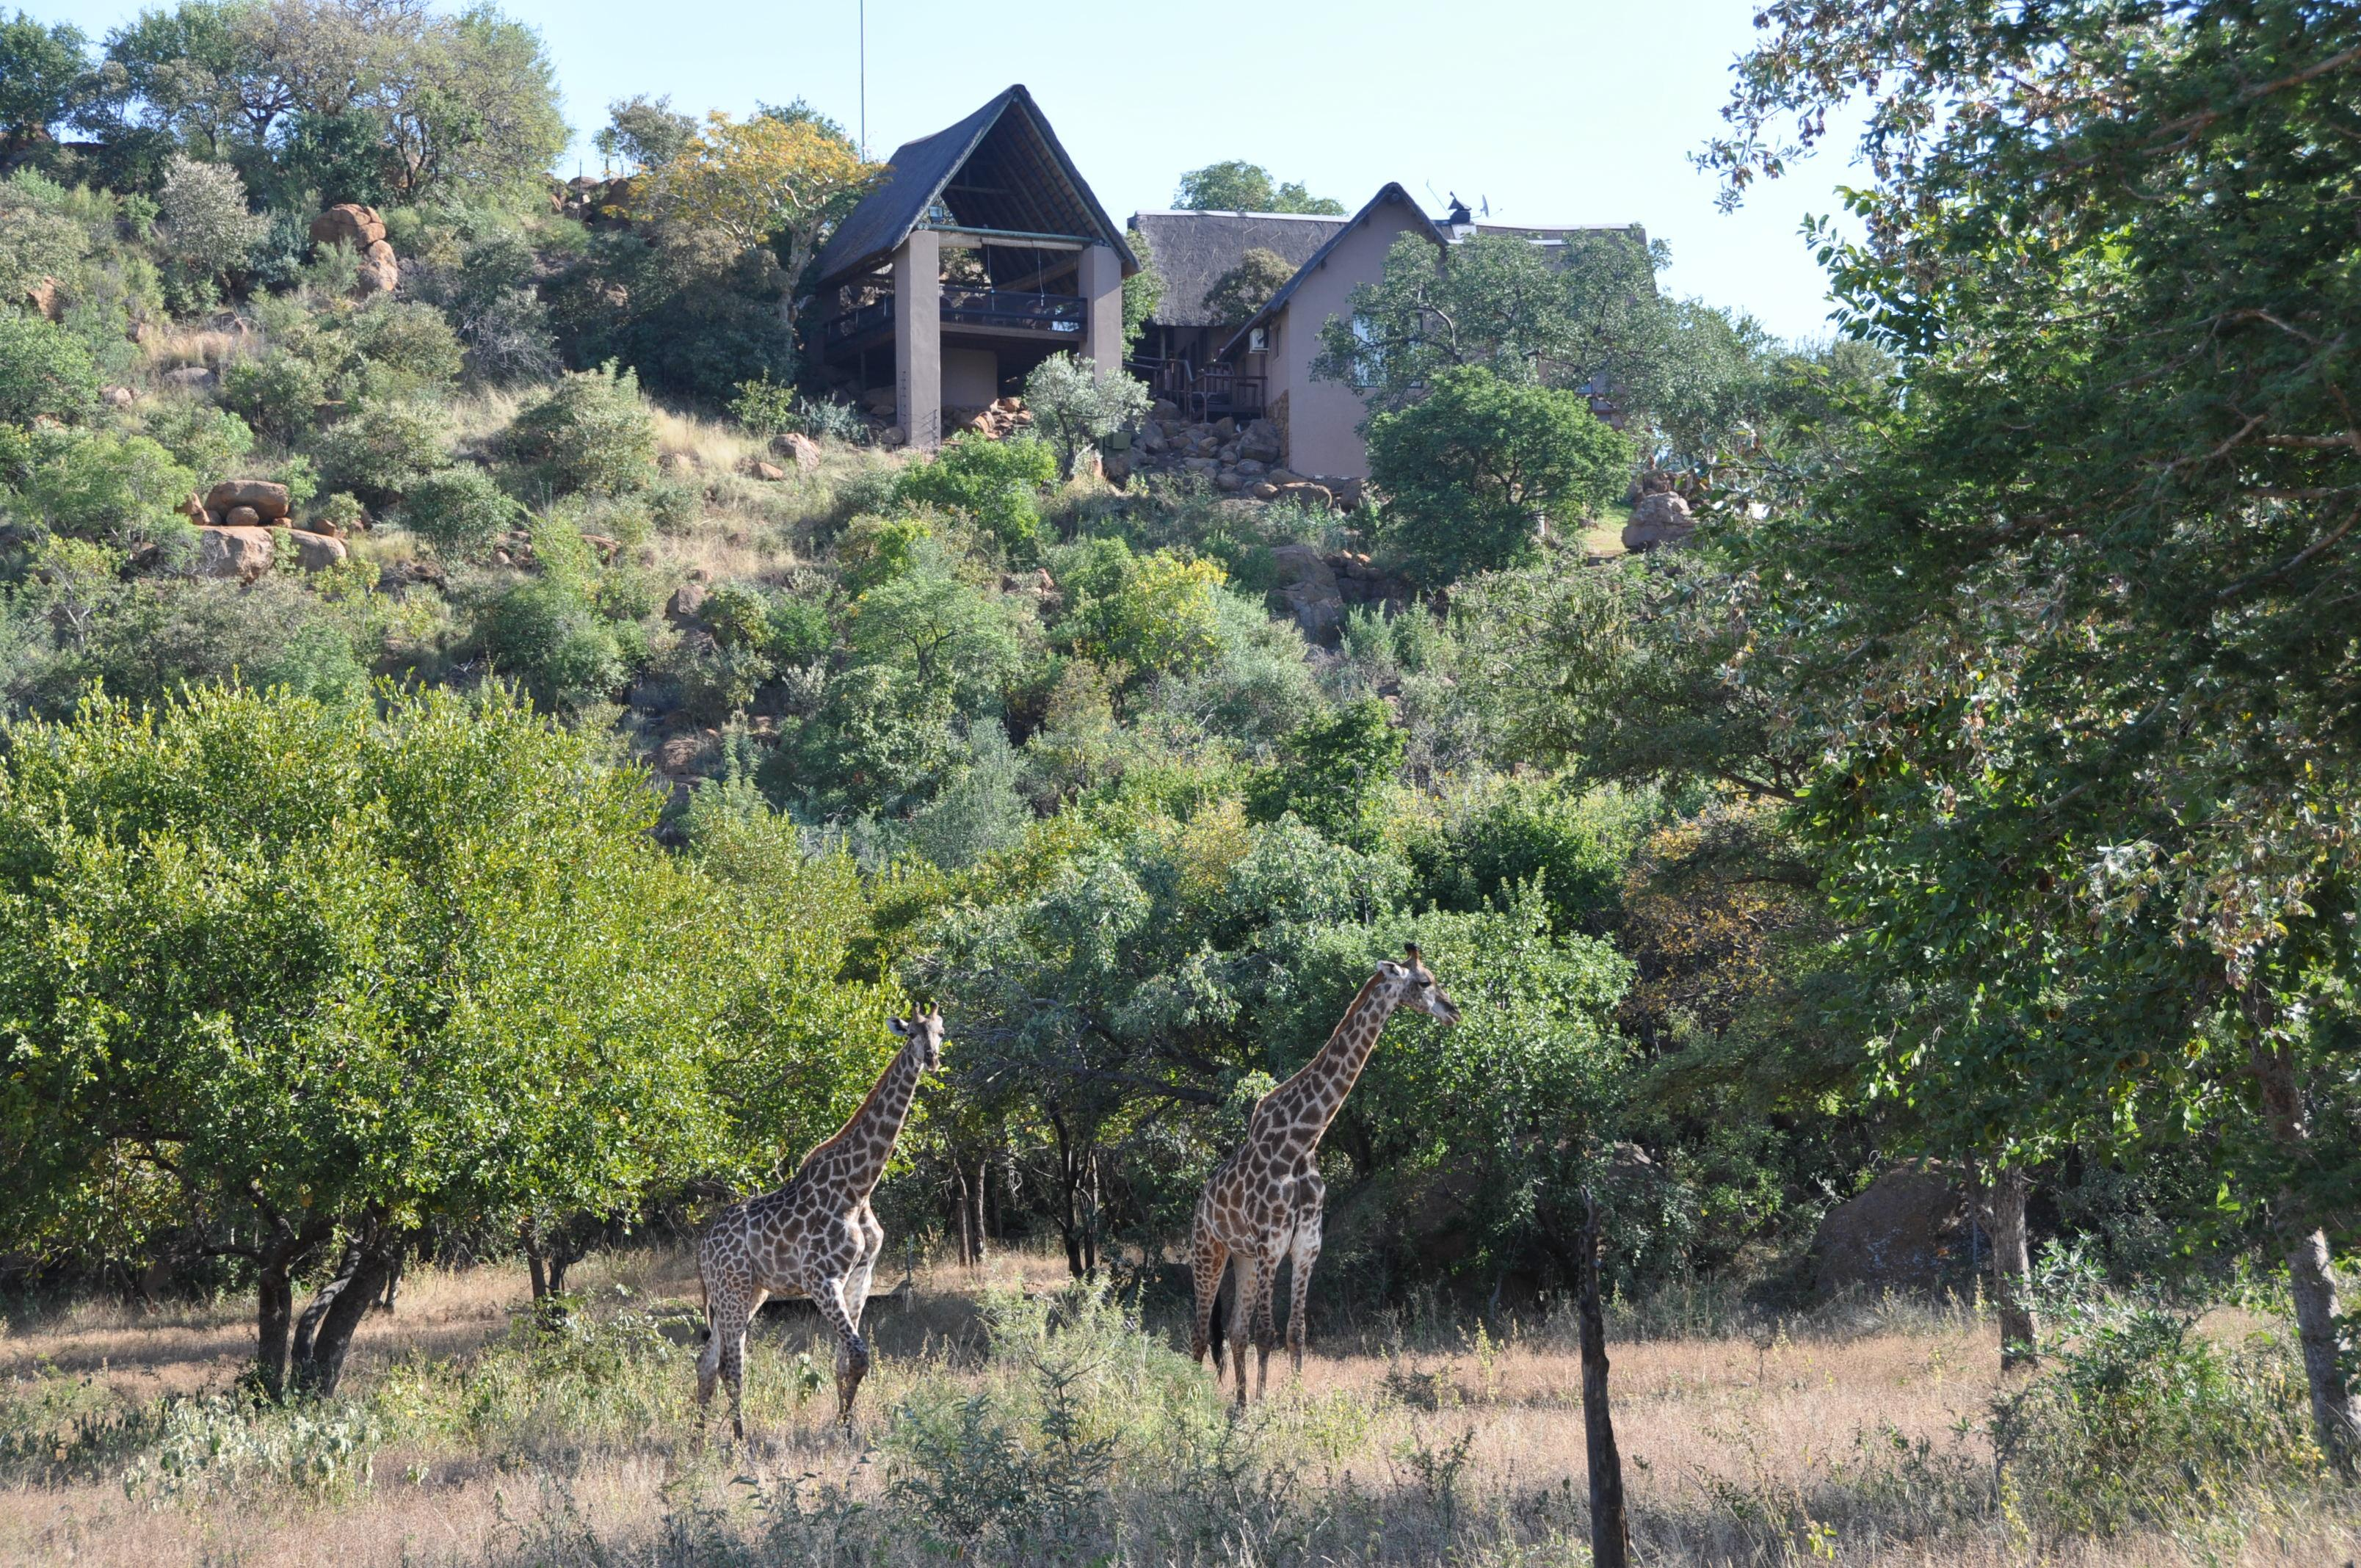 Game Lodge Rooiberg Thabazimbi, Bush Lodge Limpopo - Soul of Africa